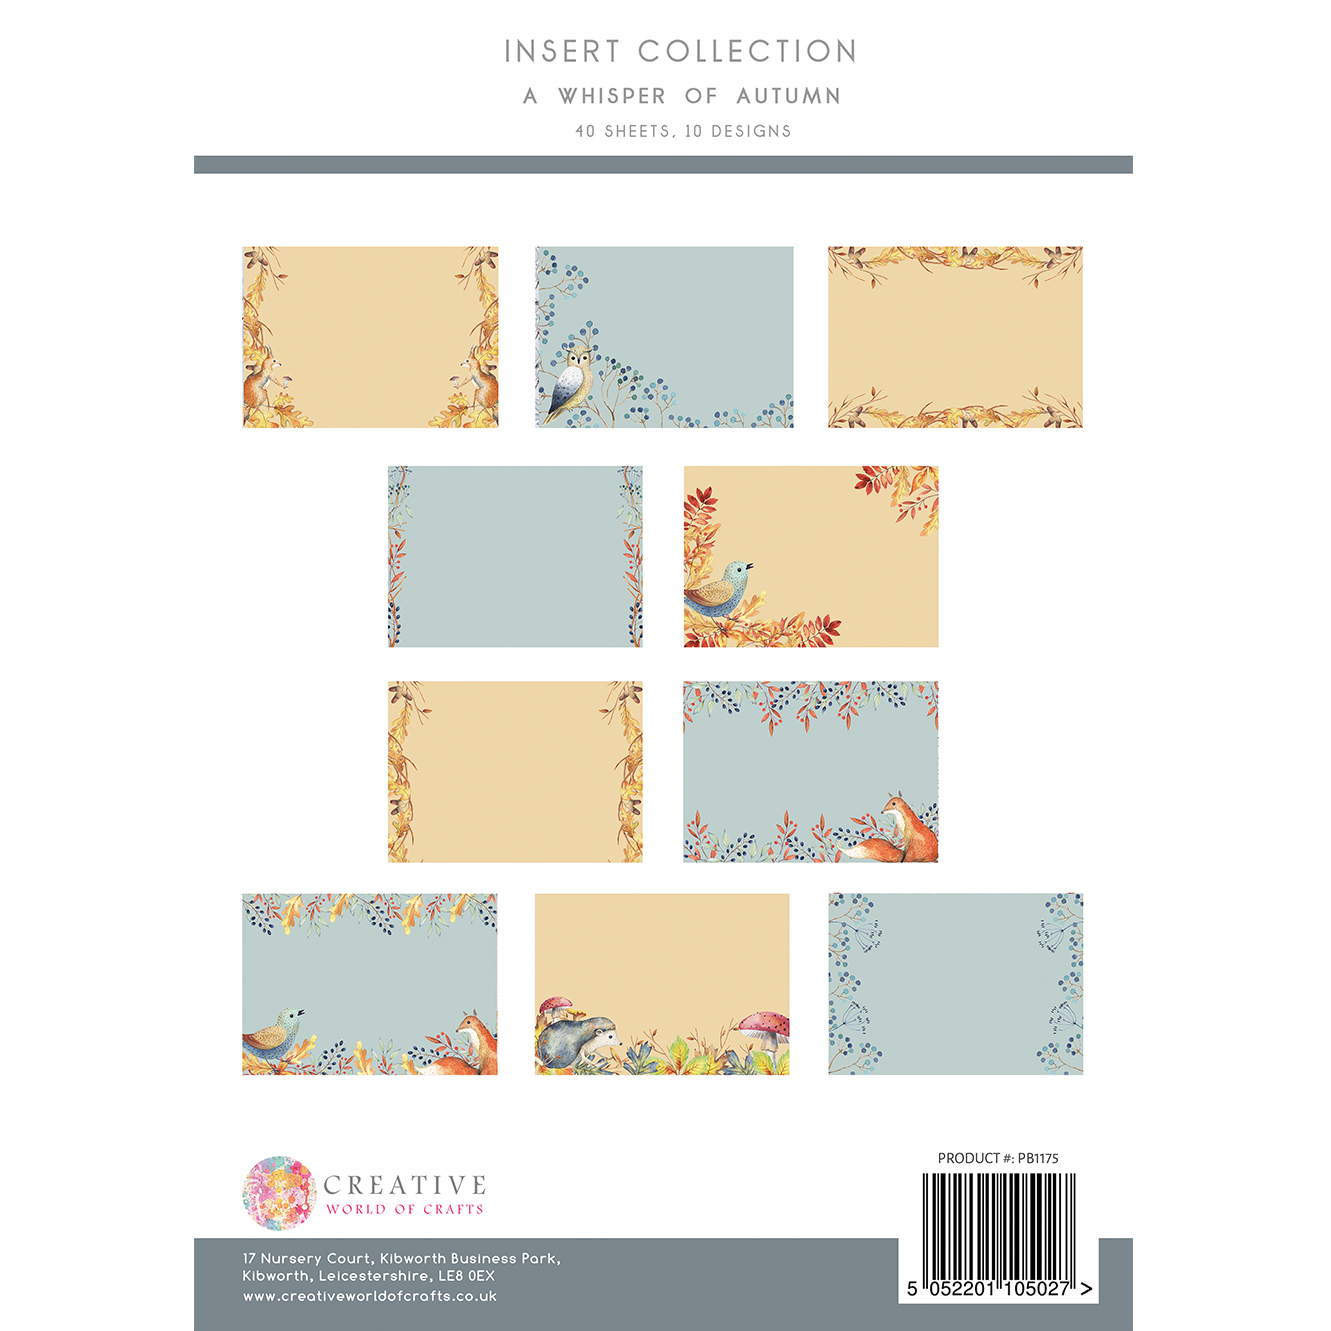 The Paper Boutique A Whisper of Autumn Insert Collection